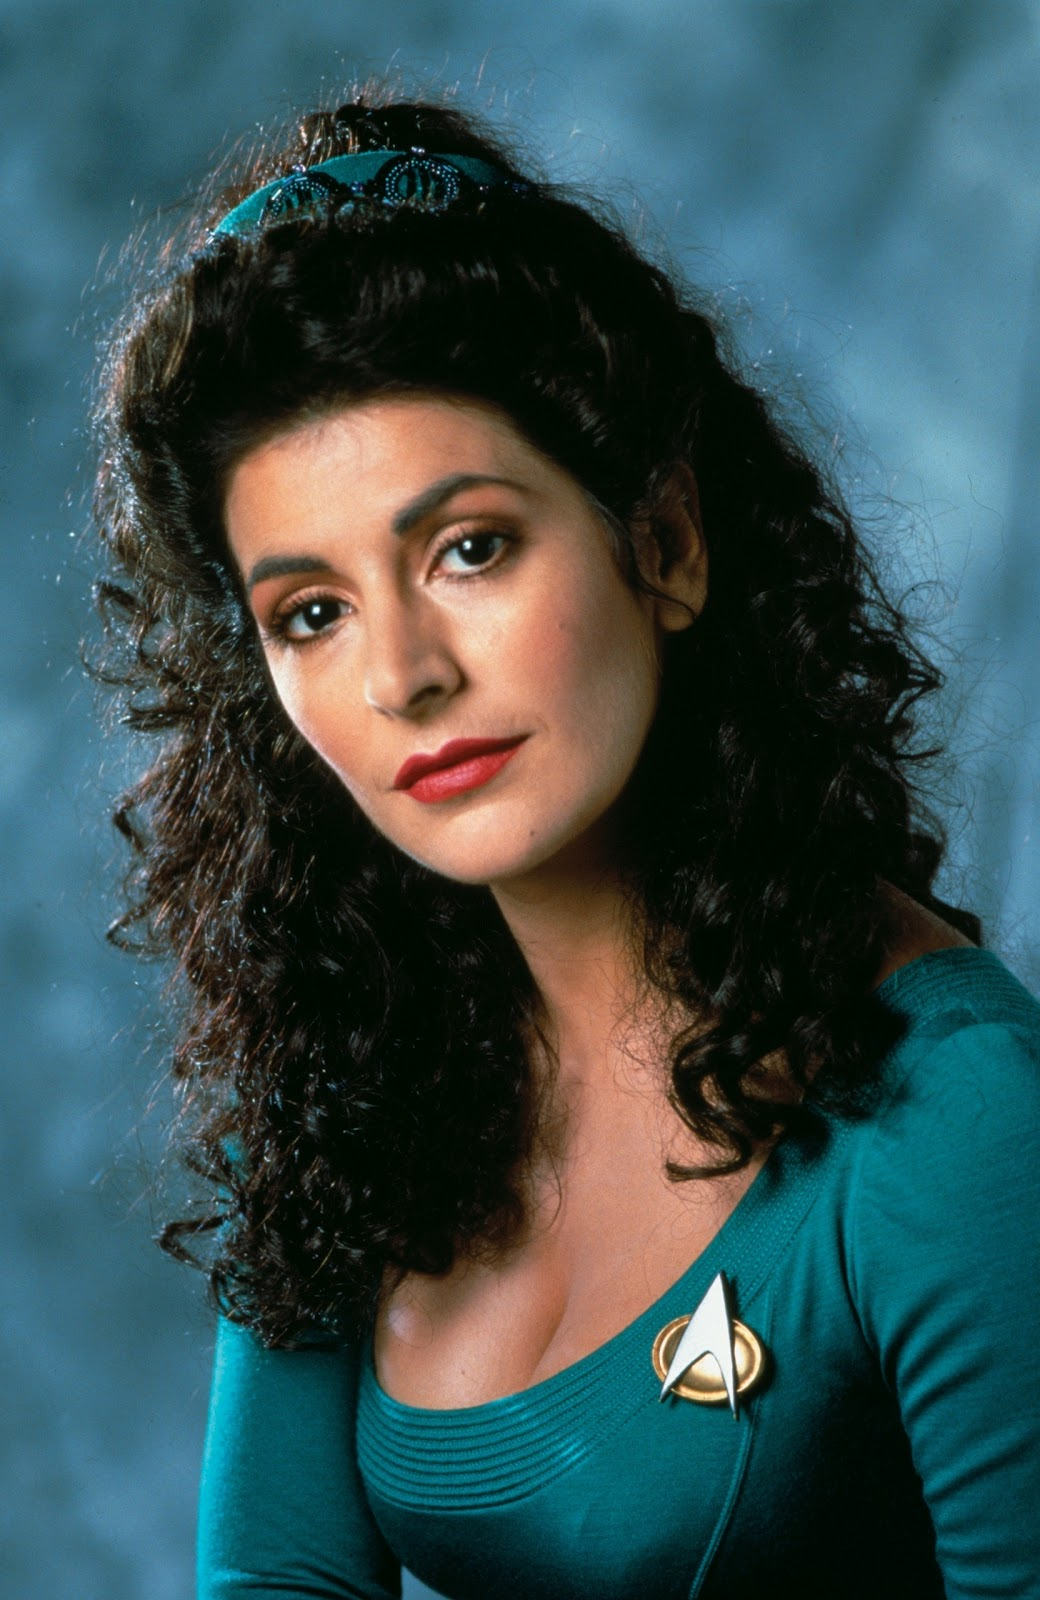 Was Marina sirtis star trek important and